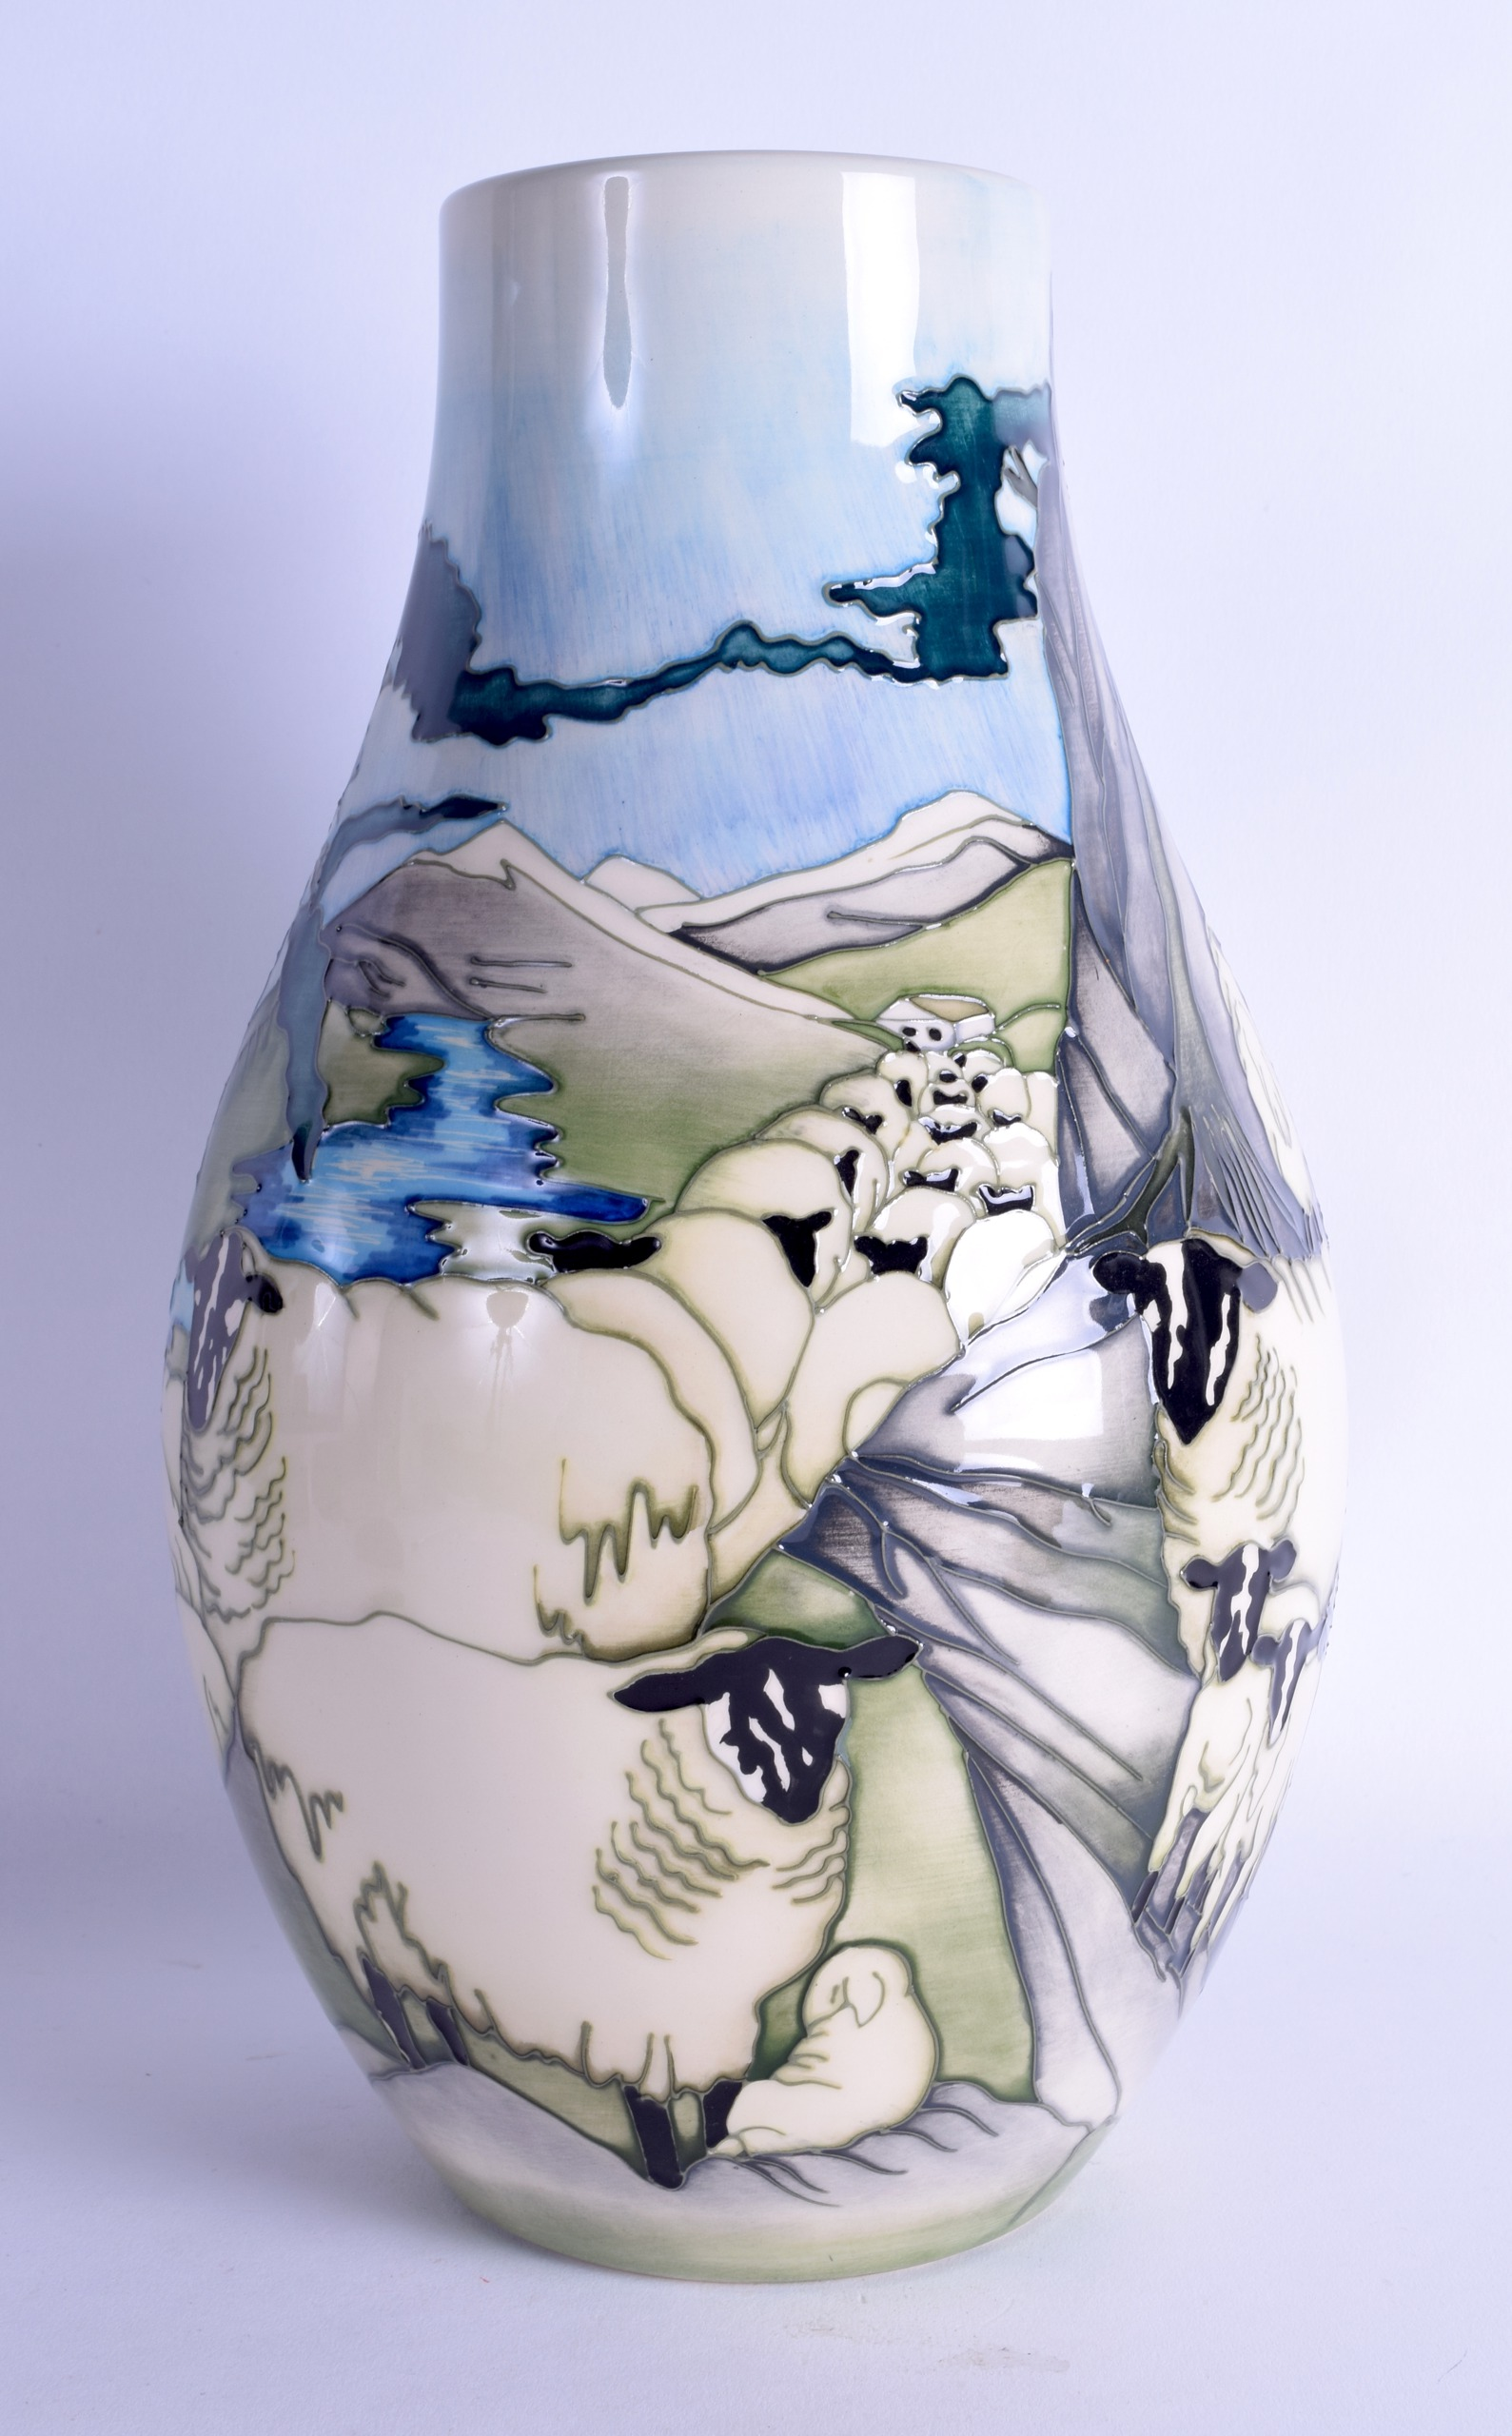 Lot 58 - A MOORCROFT 'THE ROACHES' VASE designed by Kerry Goodwin. No 38 of 100. 30 cm high.